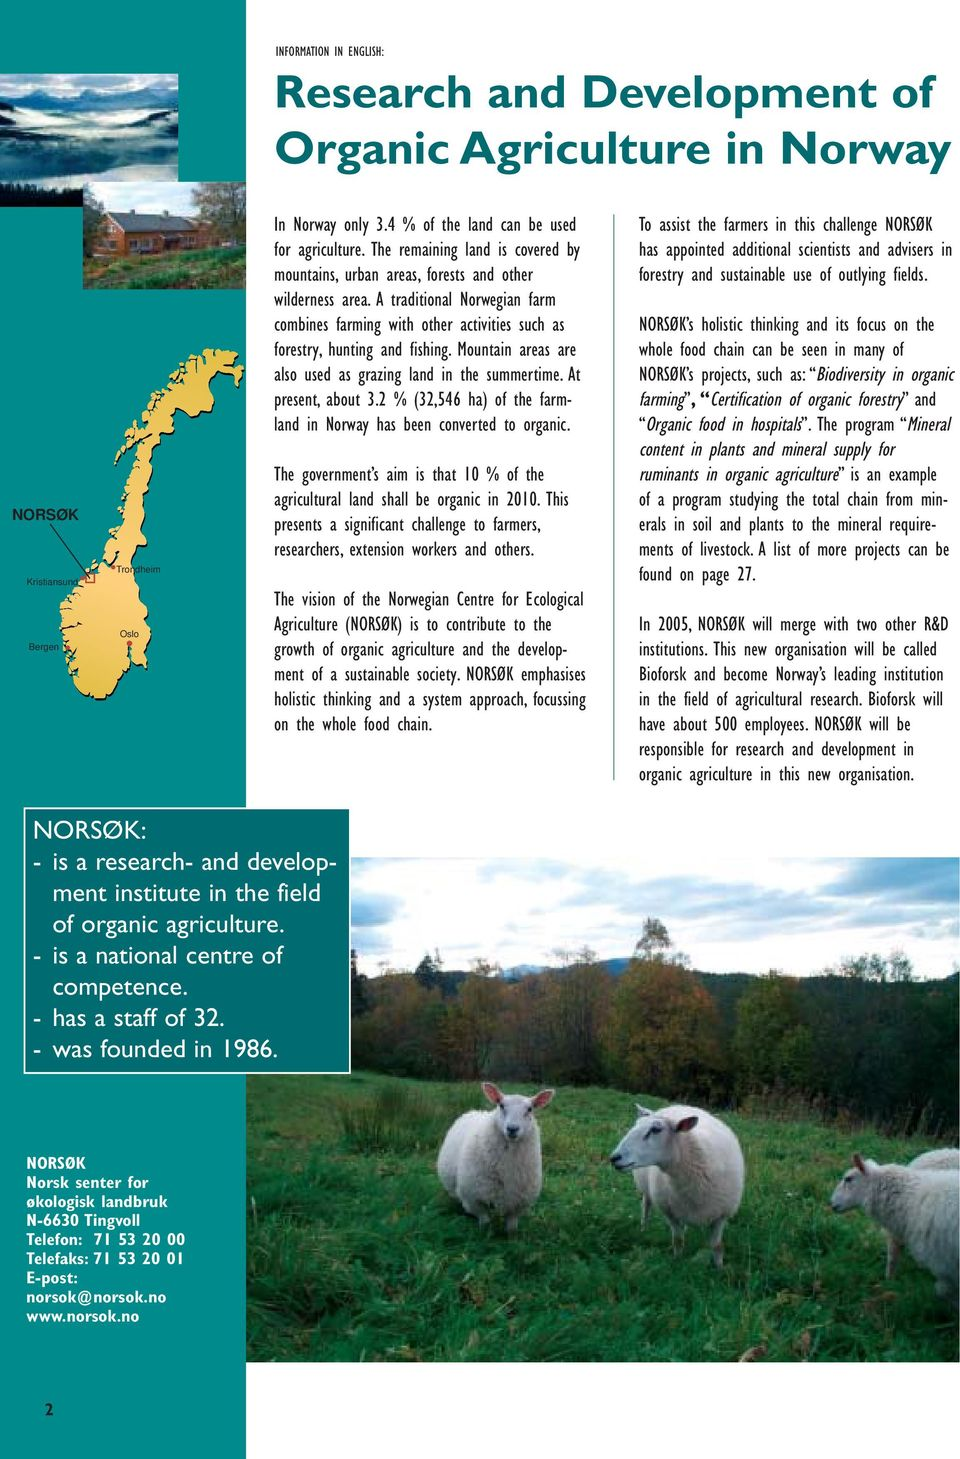 Mountain areas are also used as grazing land in the summertime. At present, about 3.2 % (32,546 ha) of the farmland in Norway has been converted to organic.